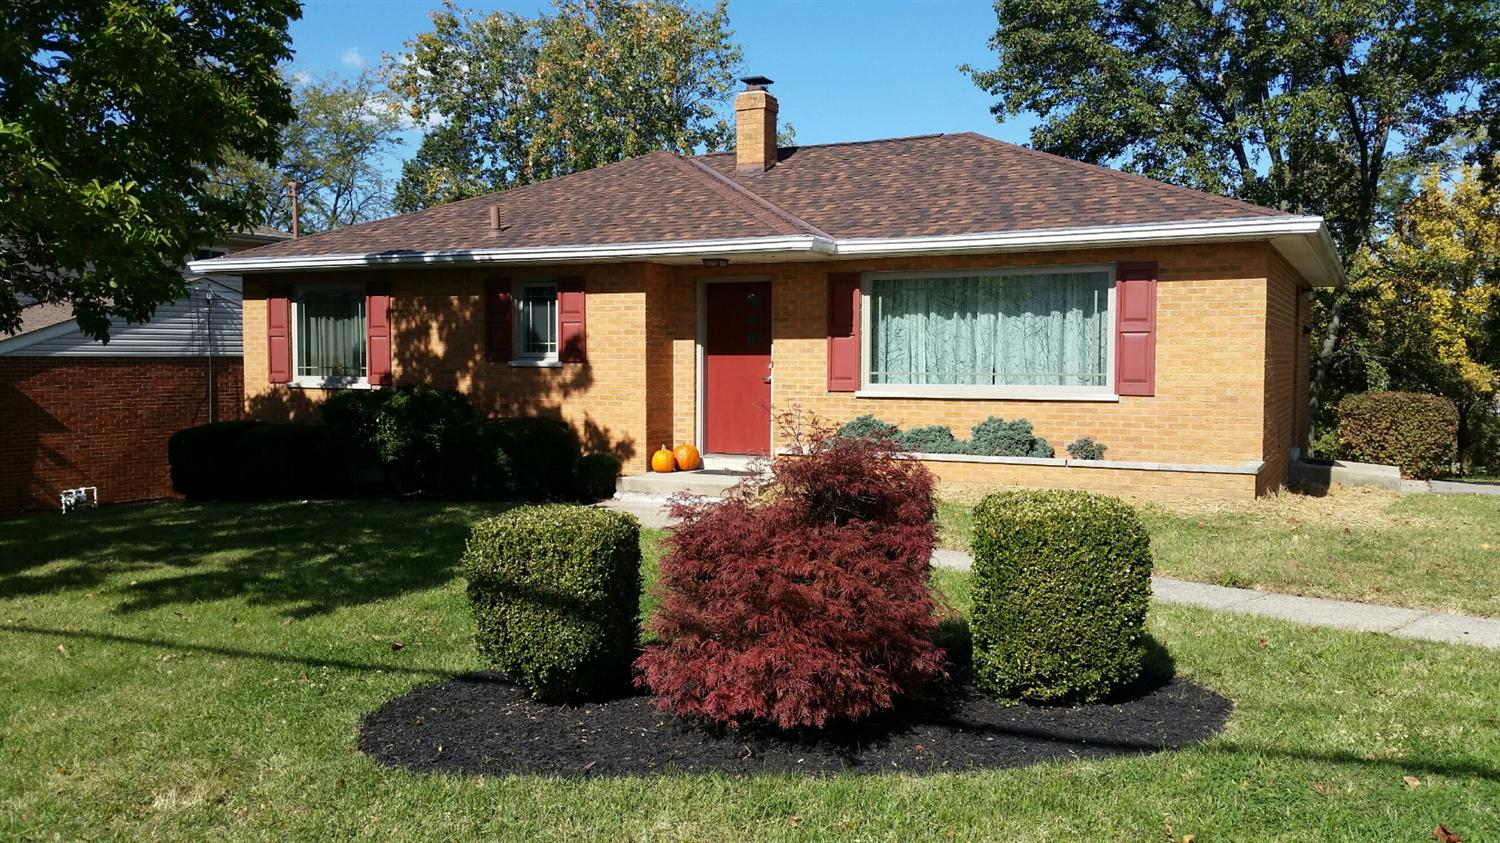 Rental Homes for Rent, ListingId:35540592, location: 520 Dudley Pike Edgewood 41017